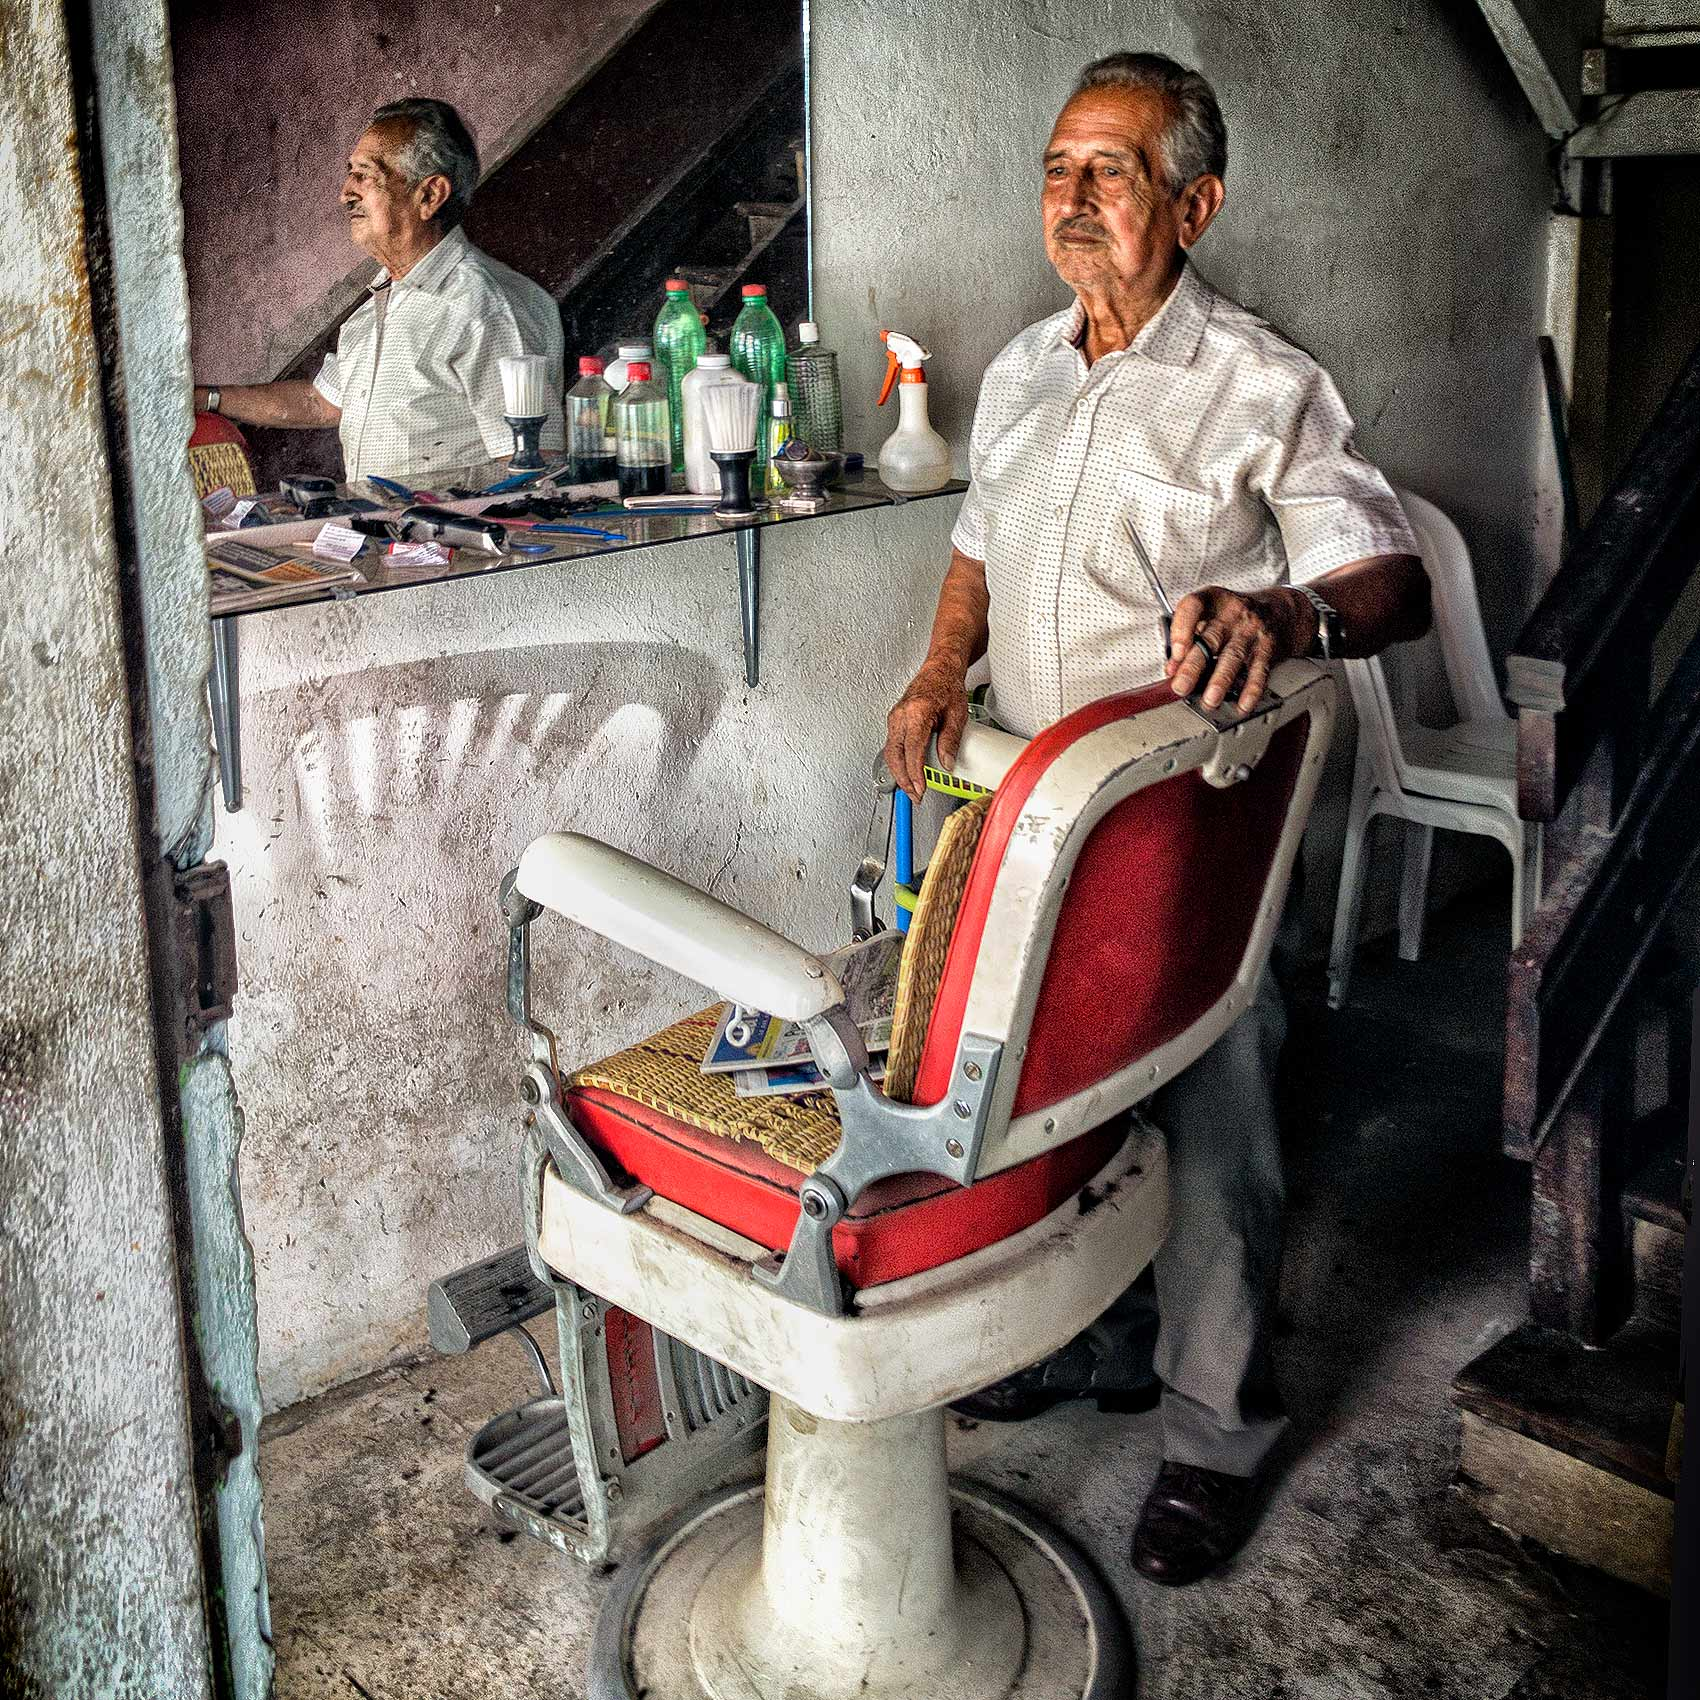 a-barber-in-esmeraldas-ecuador-by-canadian-travel-photographer-John-Hryniuk